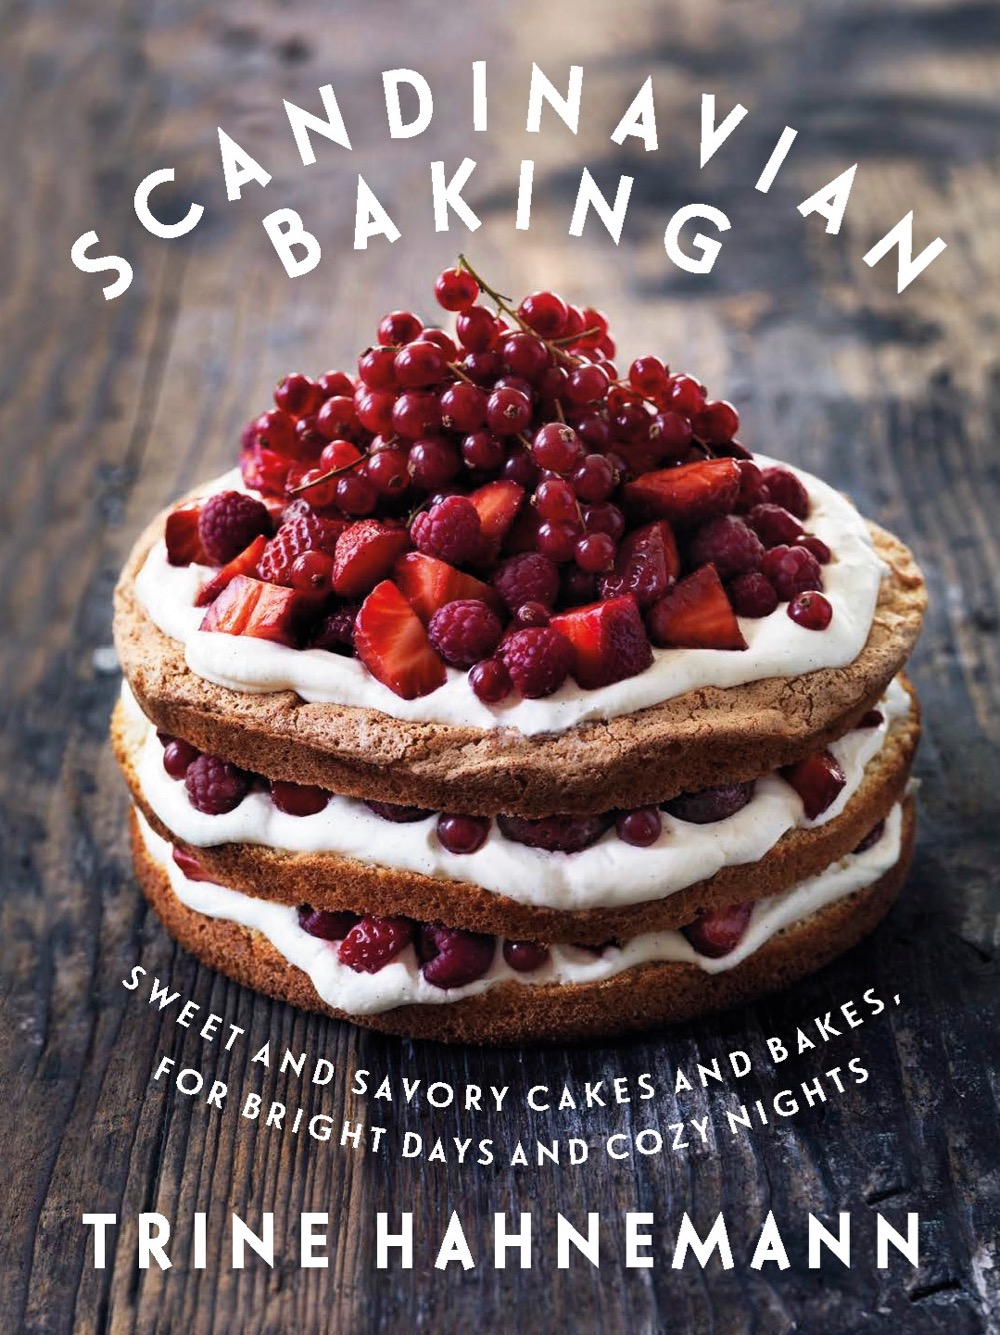 Scandinavian Baking by Trine Hahnemann